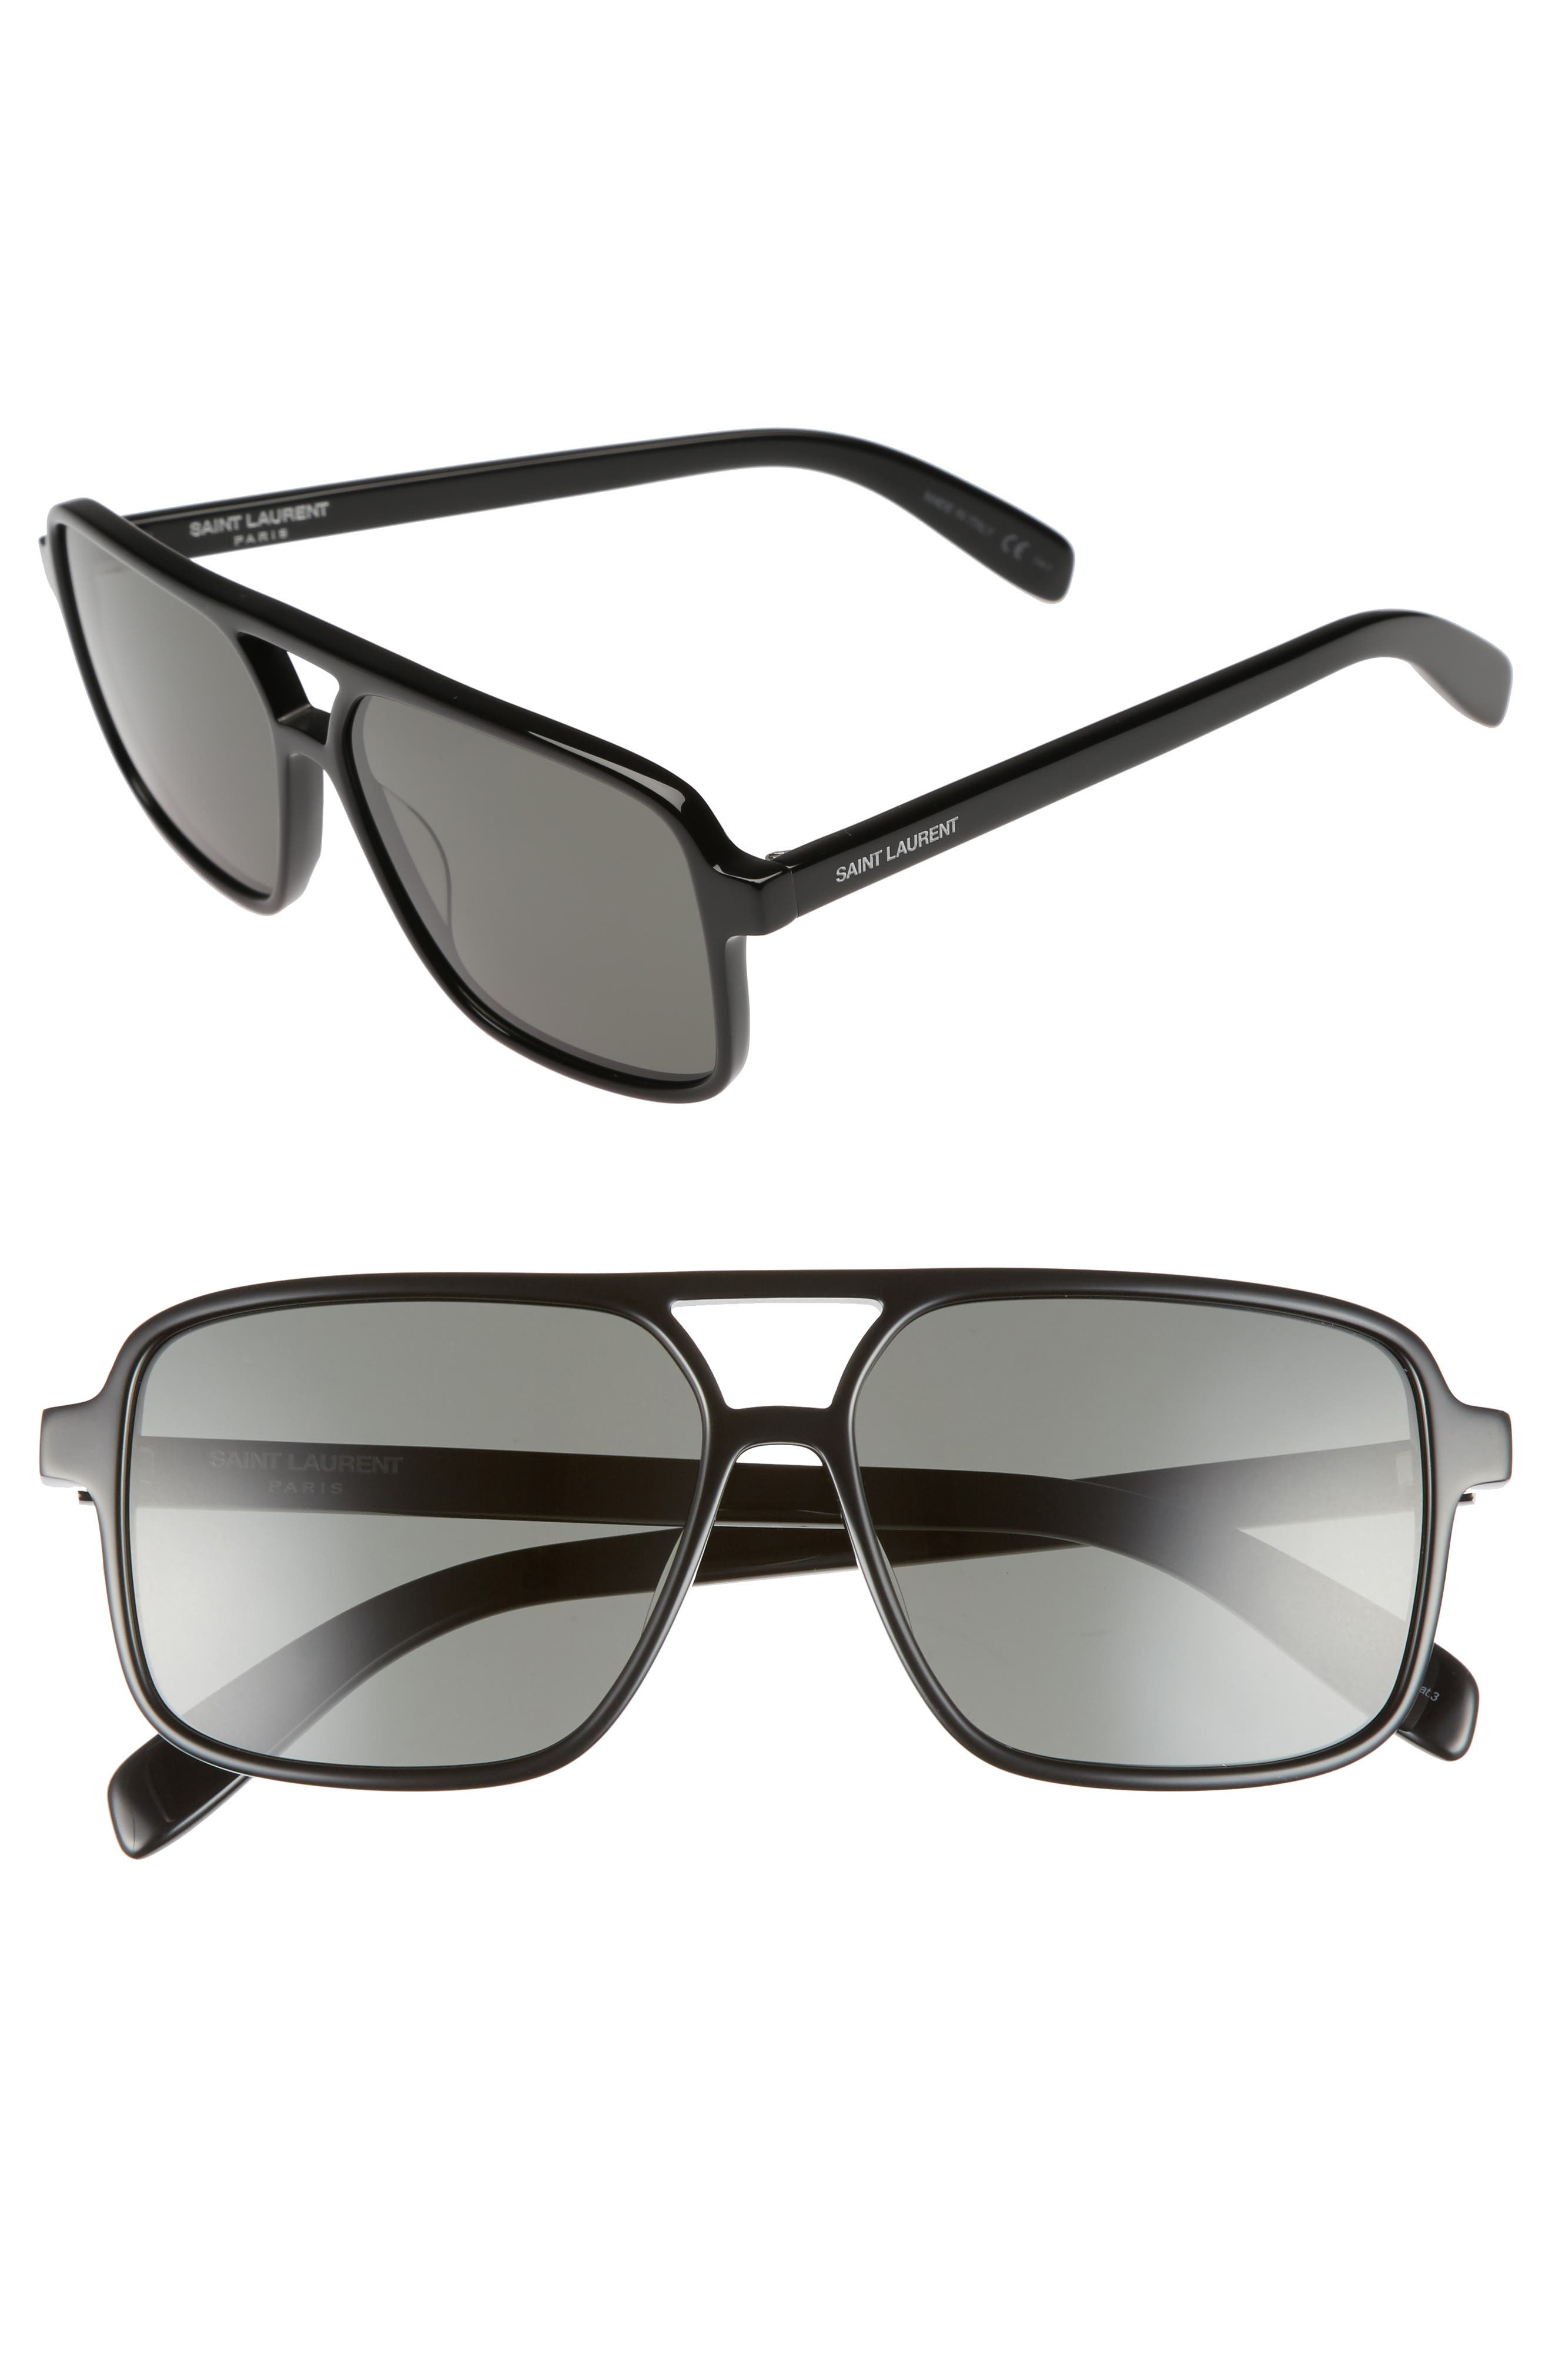 Alternate Image 1 Selected - Saint Laurent 58mm Square Navigator Sunglasses